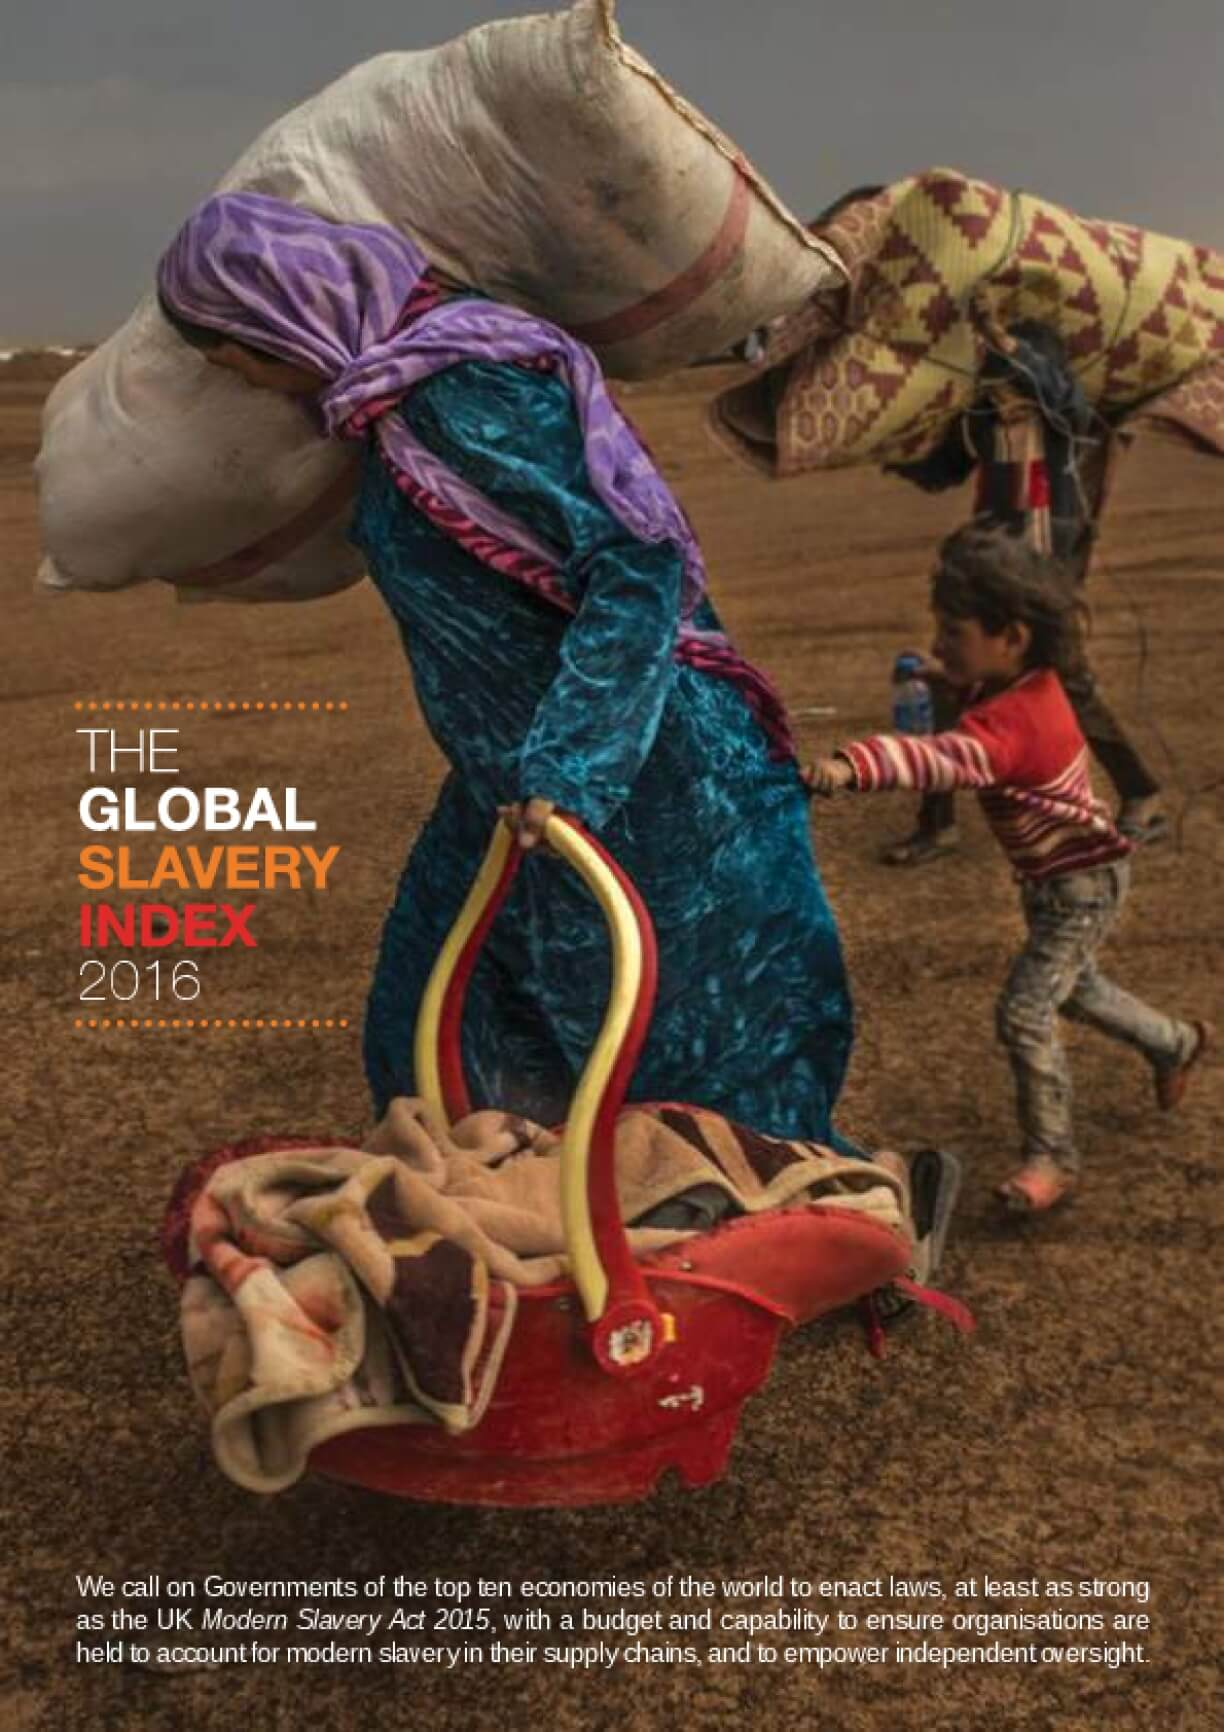 The Global Slavery Index 2016